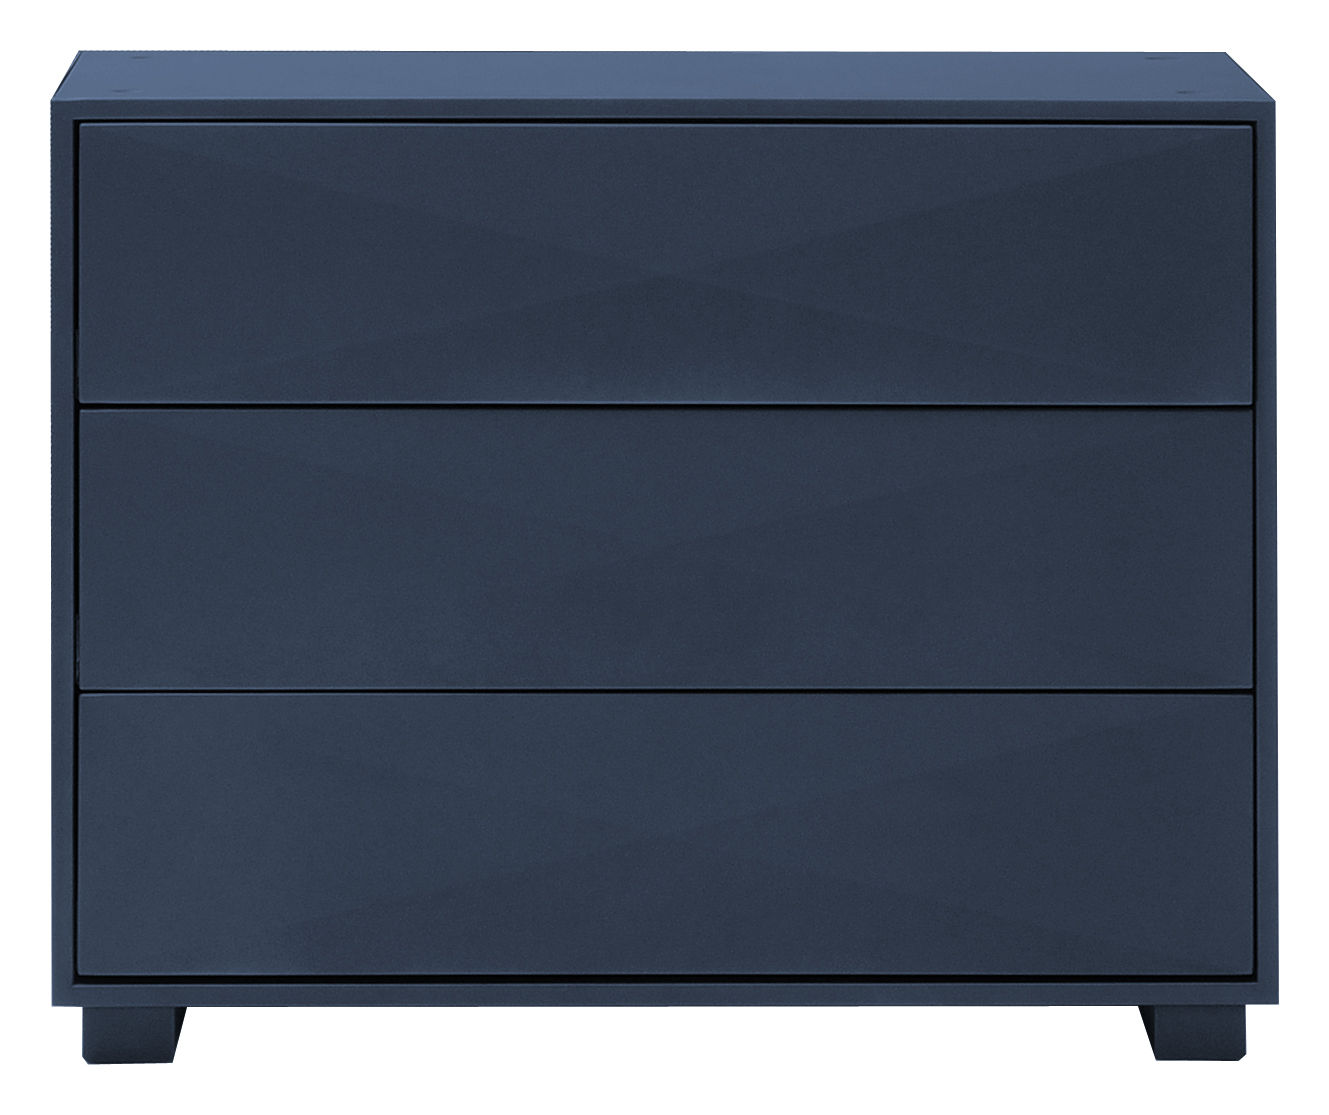 Furniture - Dressers & Storage Units - Diamant Chest of drawers - Chest of drawers by Tolix - Dark blue - Lacquered steel